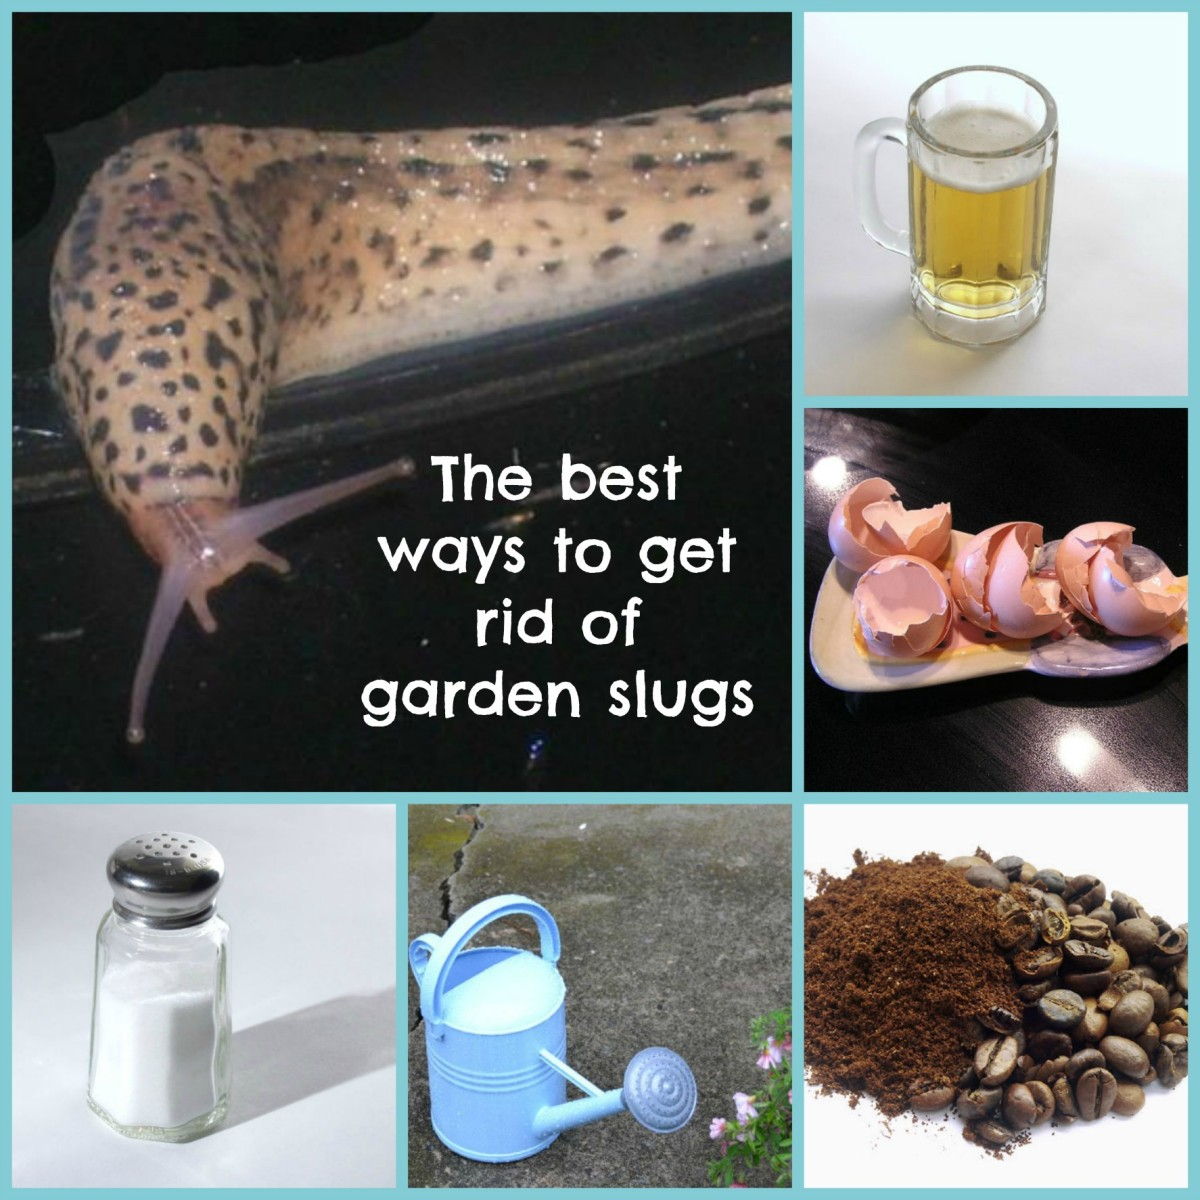 How to get rid of slugs in your garden.